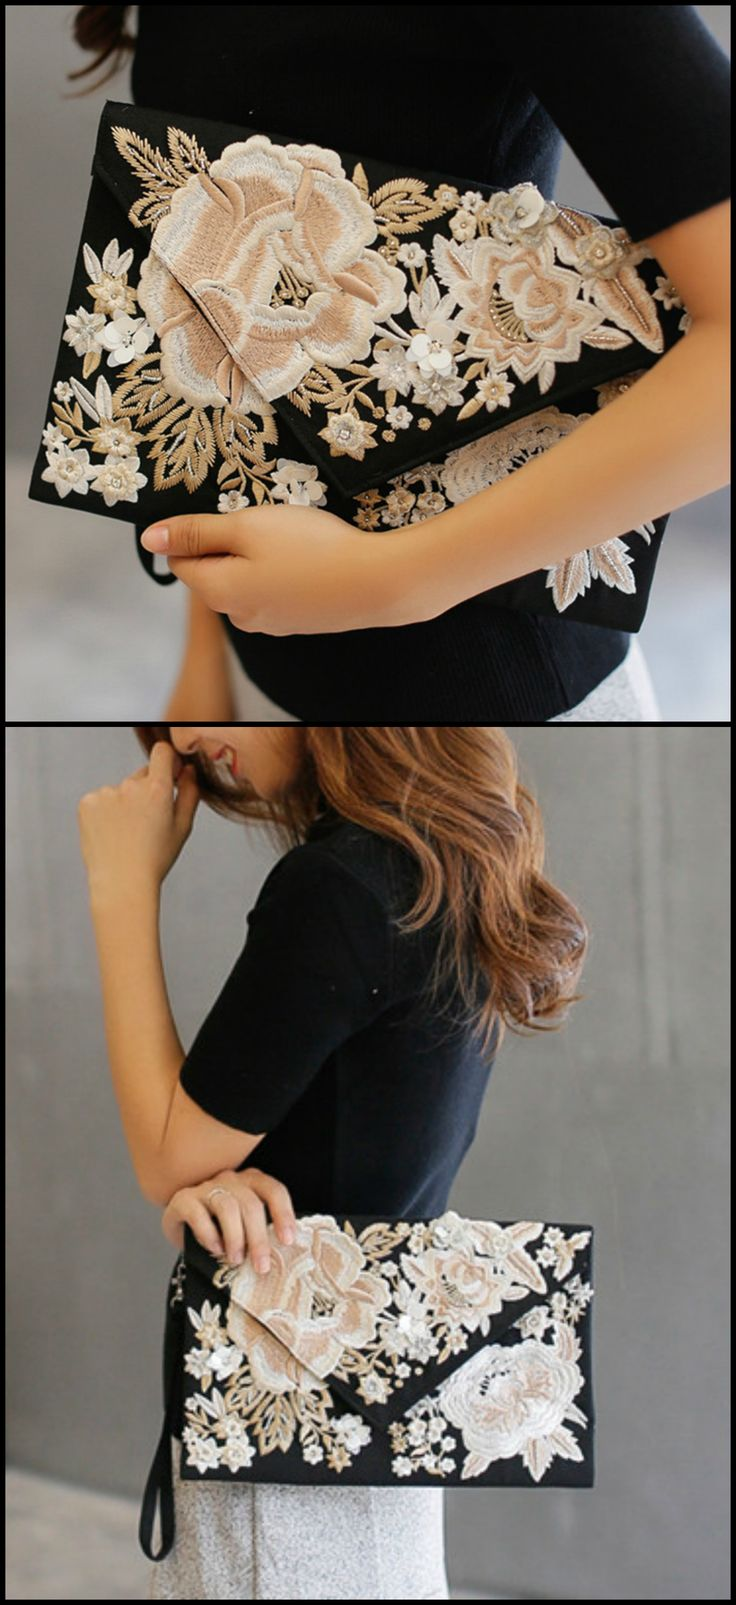 Elegant Embroidery Clutch Bag is now available at $45 from Pasaboho. This Bag exhibit unique design with beautiful embroidered pattern. Available for Wholesale and Retail.